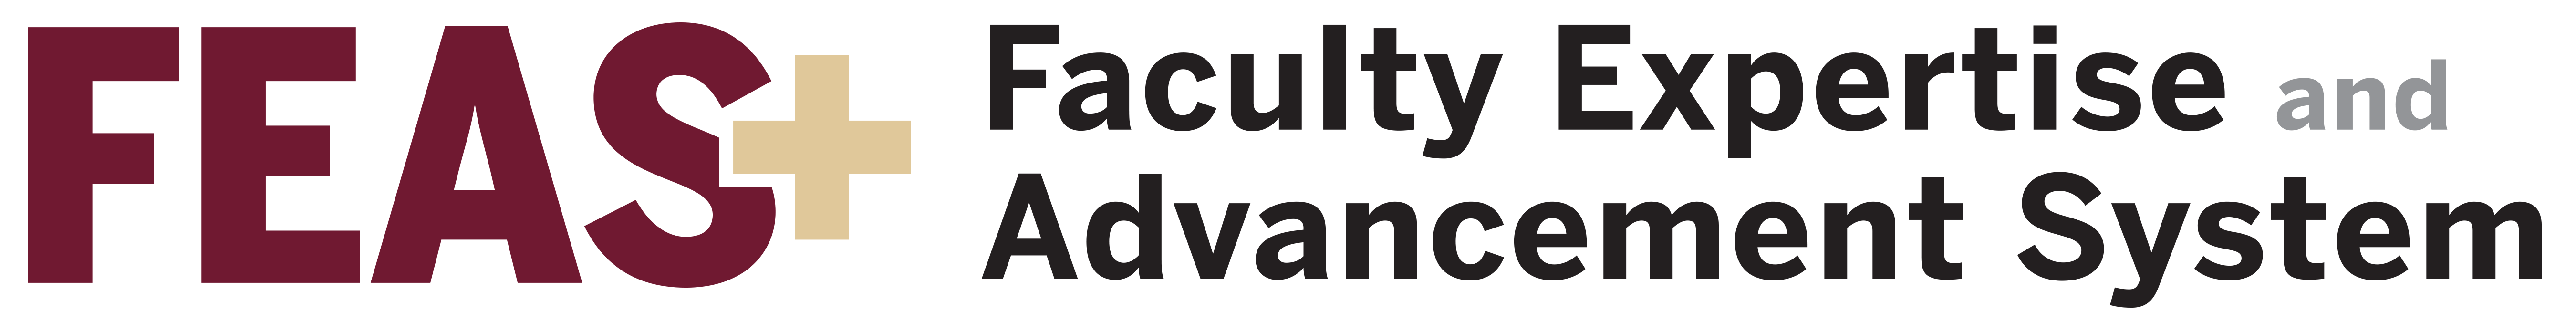 Faculty Expertise and Advancement System Logo